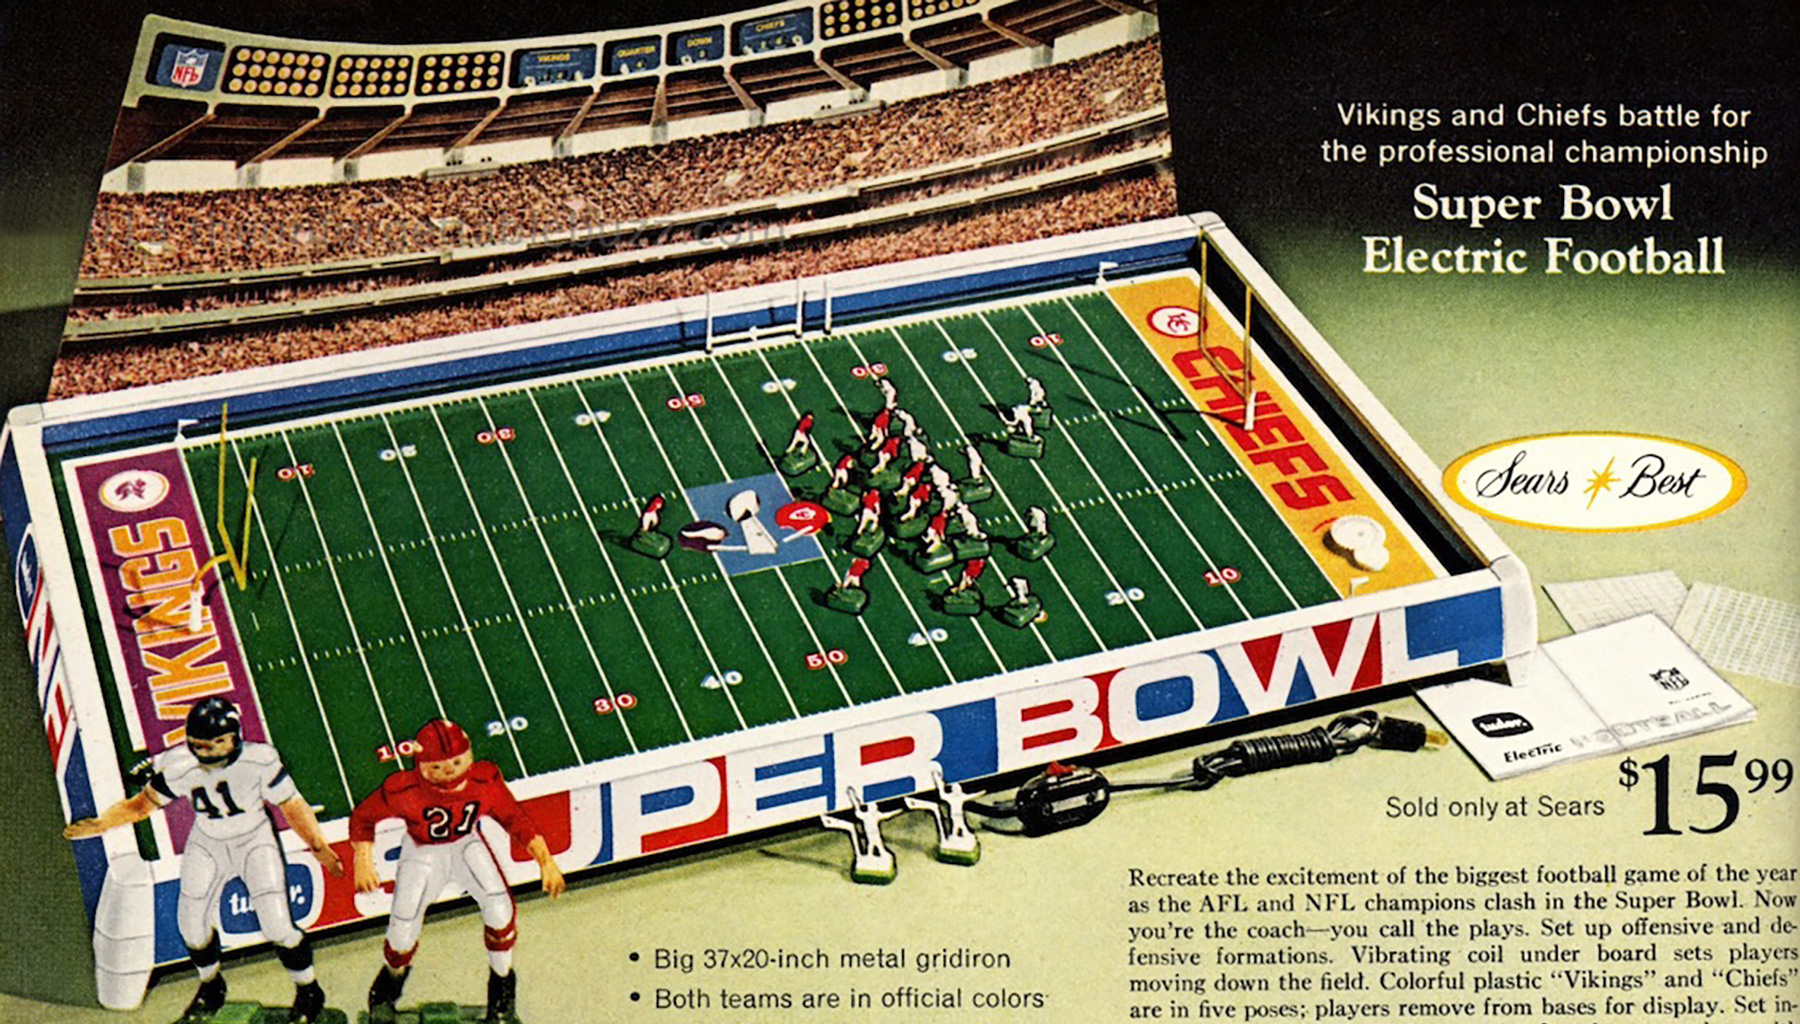 Sears Wishbook: Super Bowl Electric Football Game Model no 633